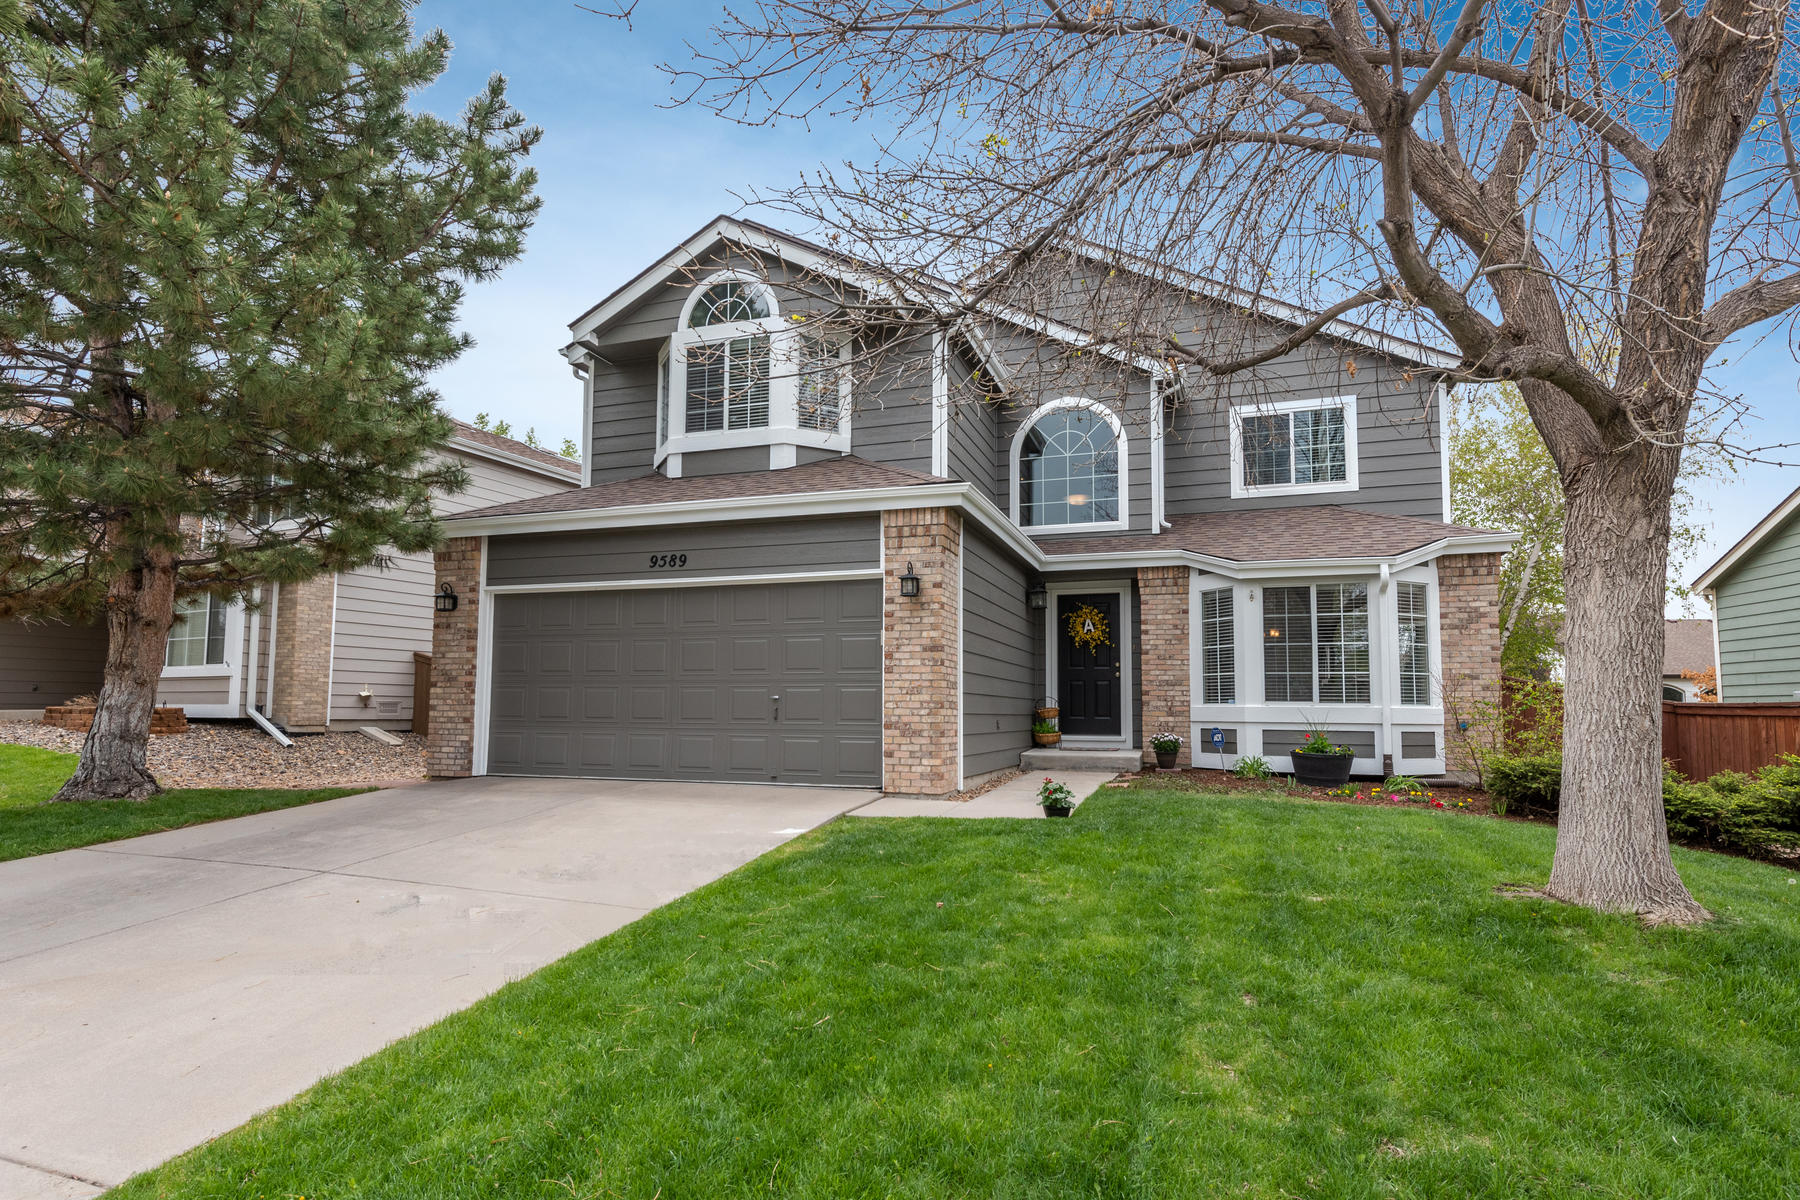 Single Family Homes for Sale at Charming home filled with tasteful finishes throughout 9589 Painted Canyon Circle Highlands Ranch, Colorado 80129 United States